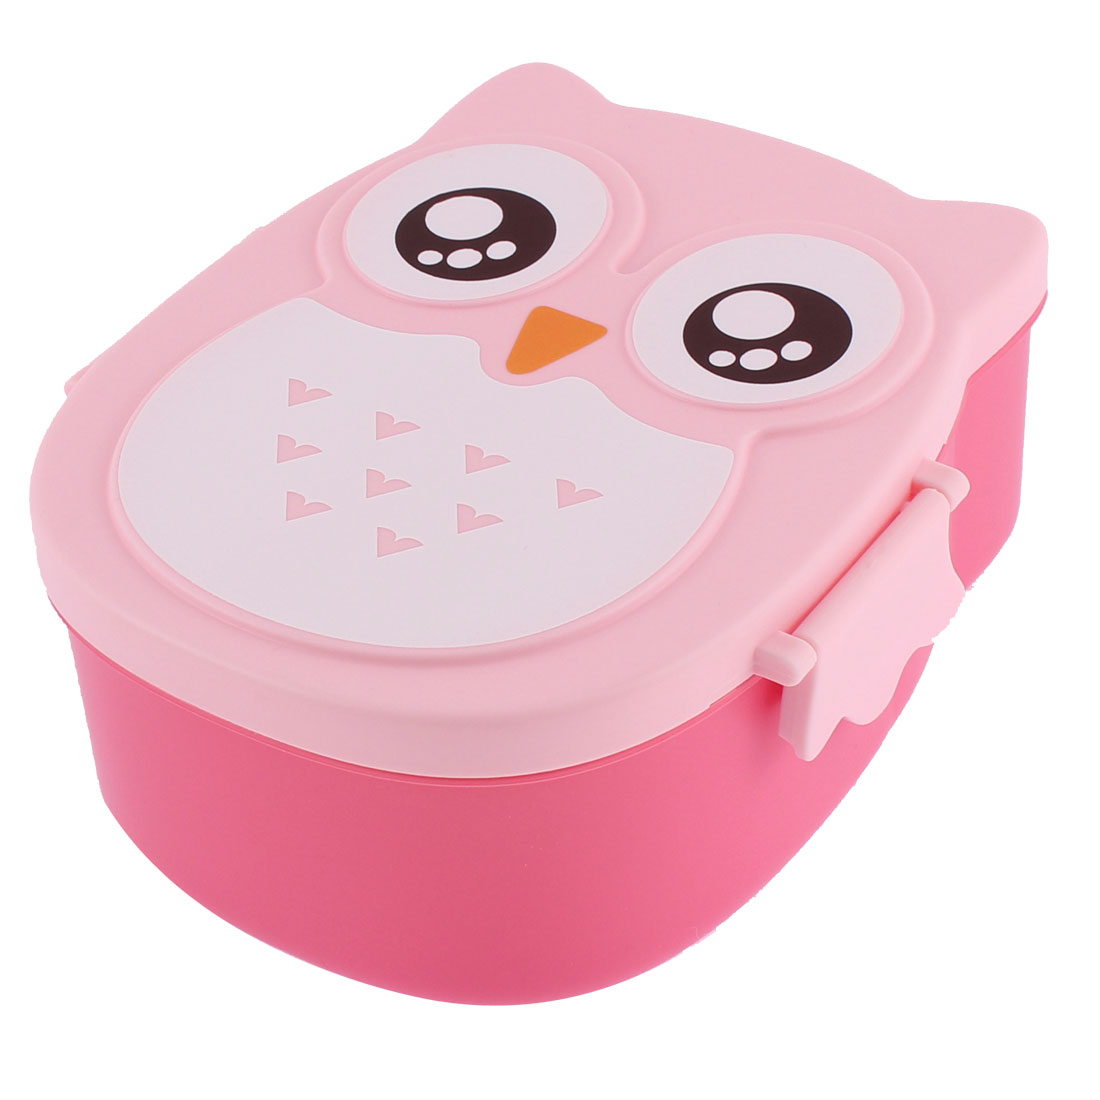 Cartoon Owl Shape Plastic Lunch Box Case Food Container Pink